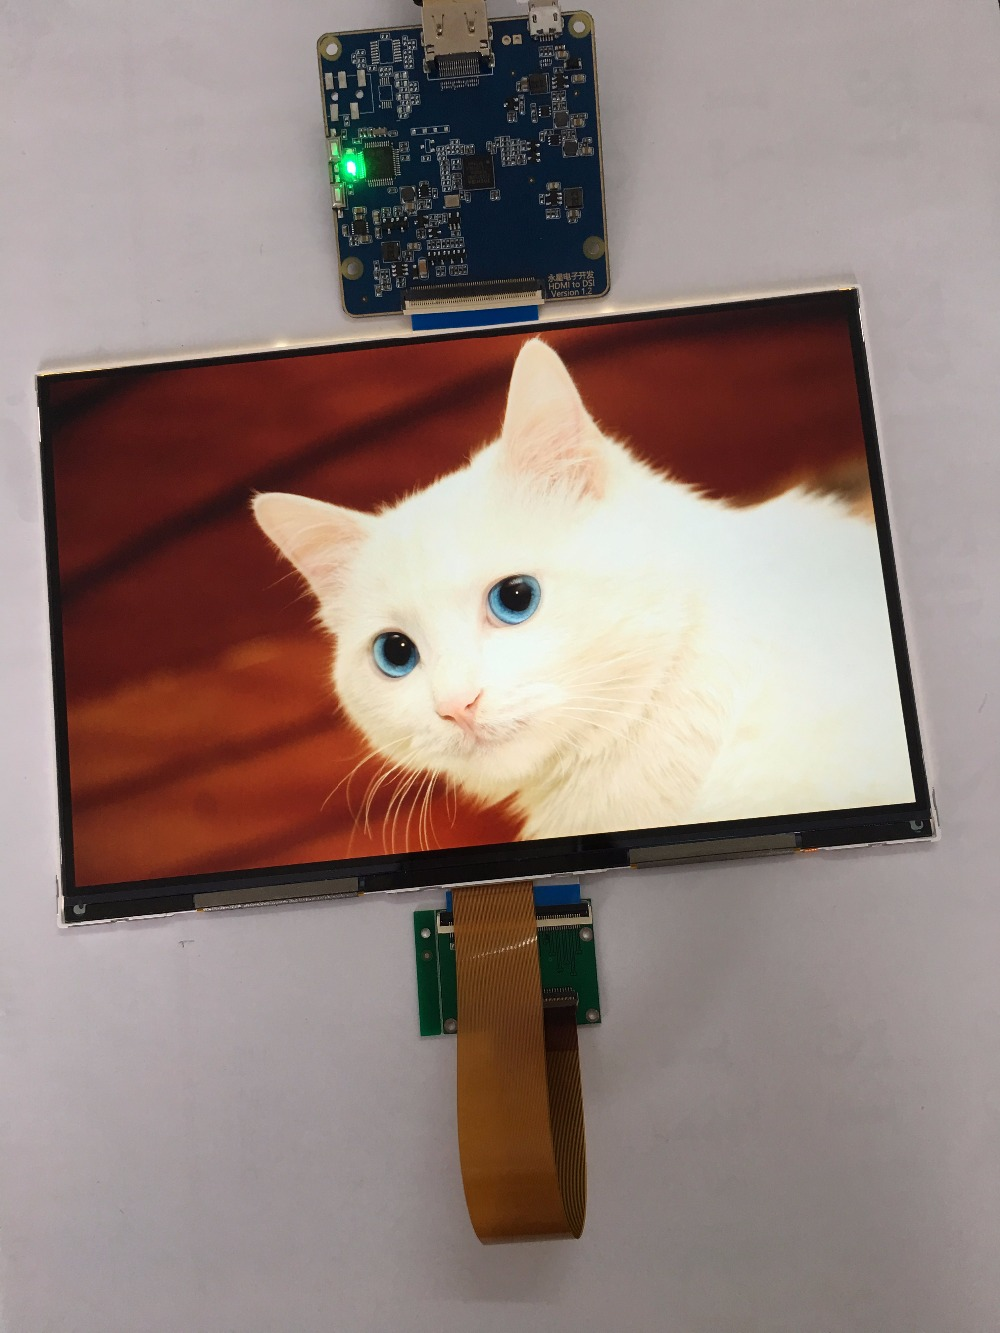 8.9 inch LCD display module 2K 2560*1600 MIPI interface 1200:1 C/R 60Hz display screen with driver board